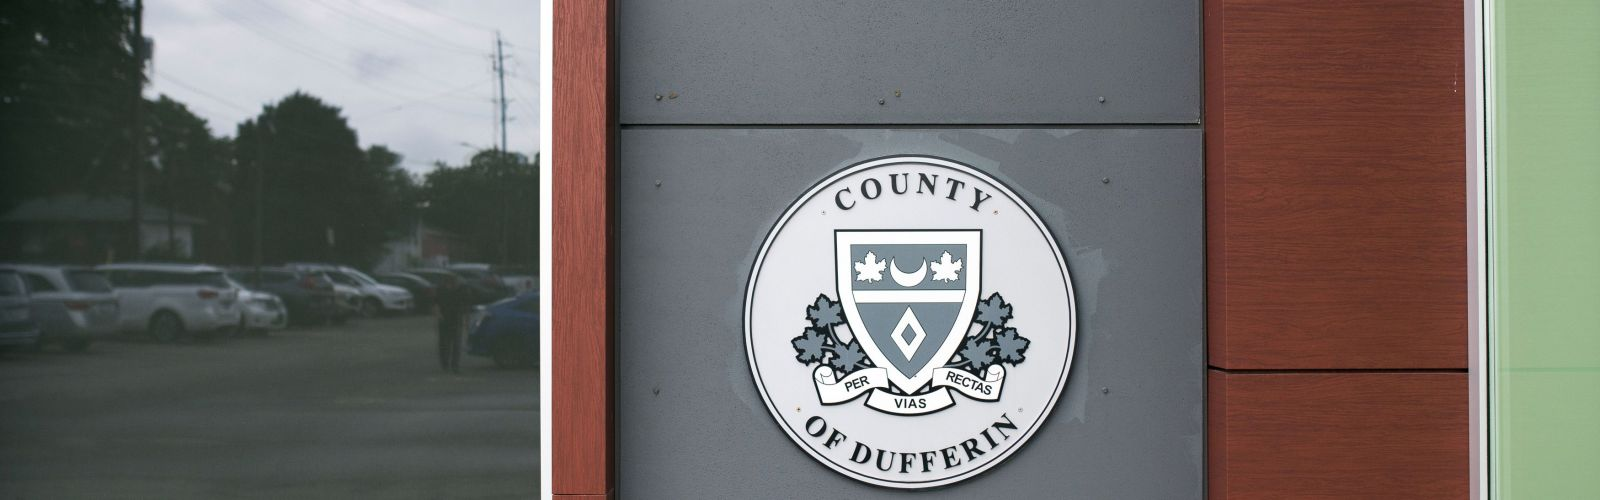 dufferin county sign